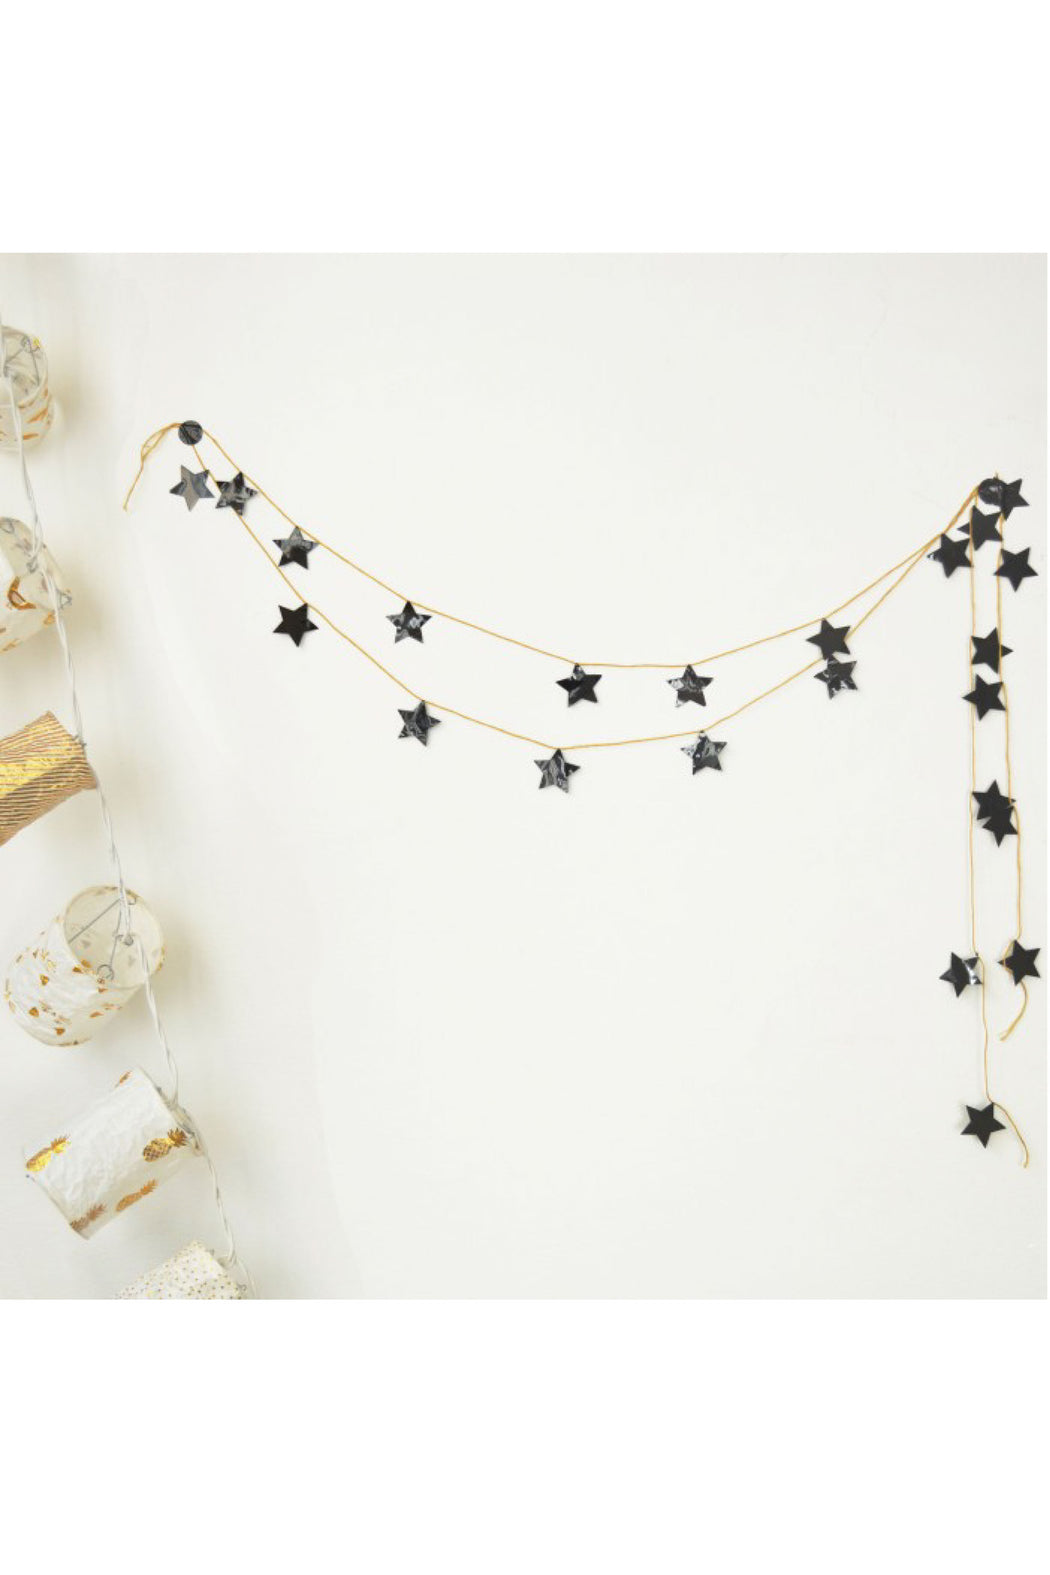 Shiny Black Stars Garland Kit, Decor, MIMI' lou - 3LittlePicks